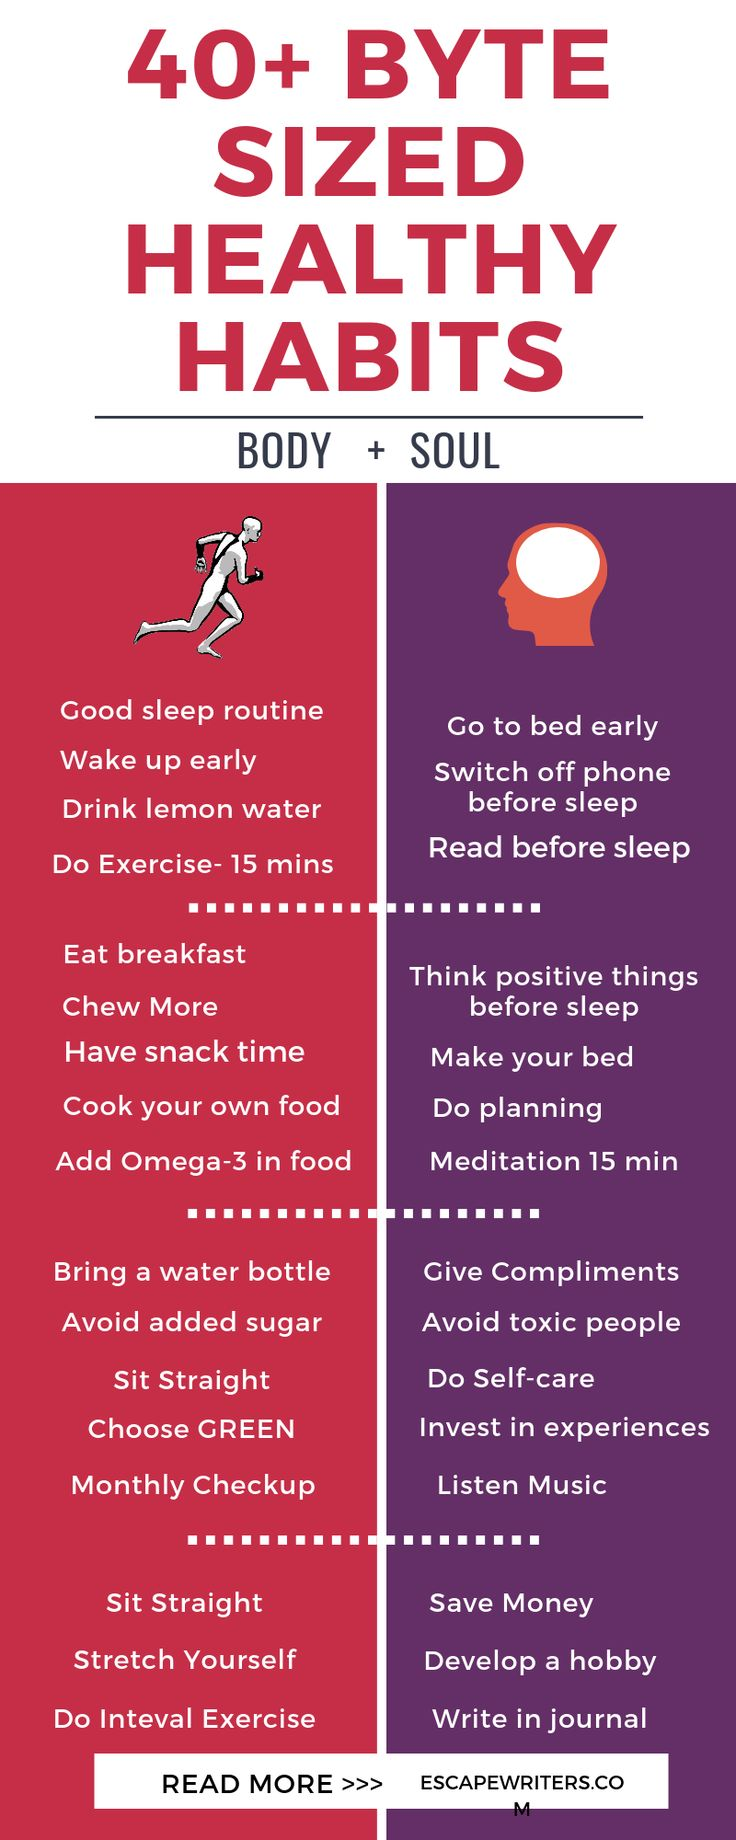 40+ Byte Sized Healthy Habits For Life 1